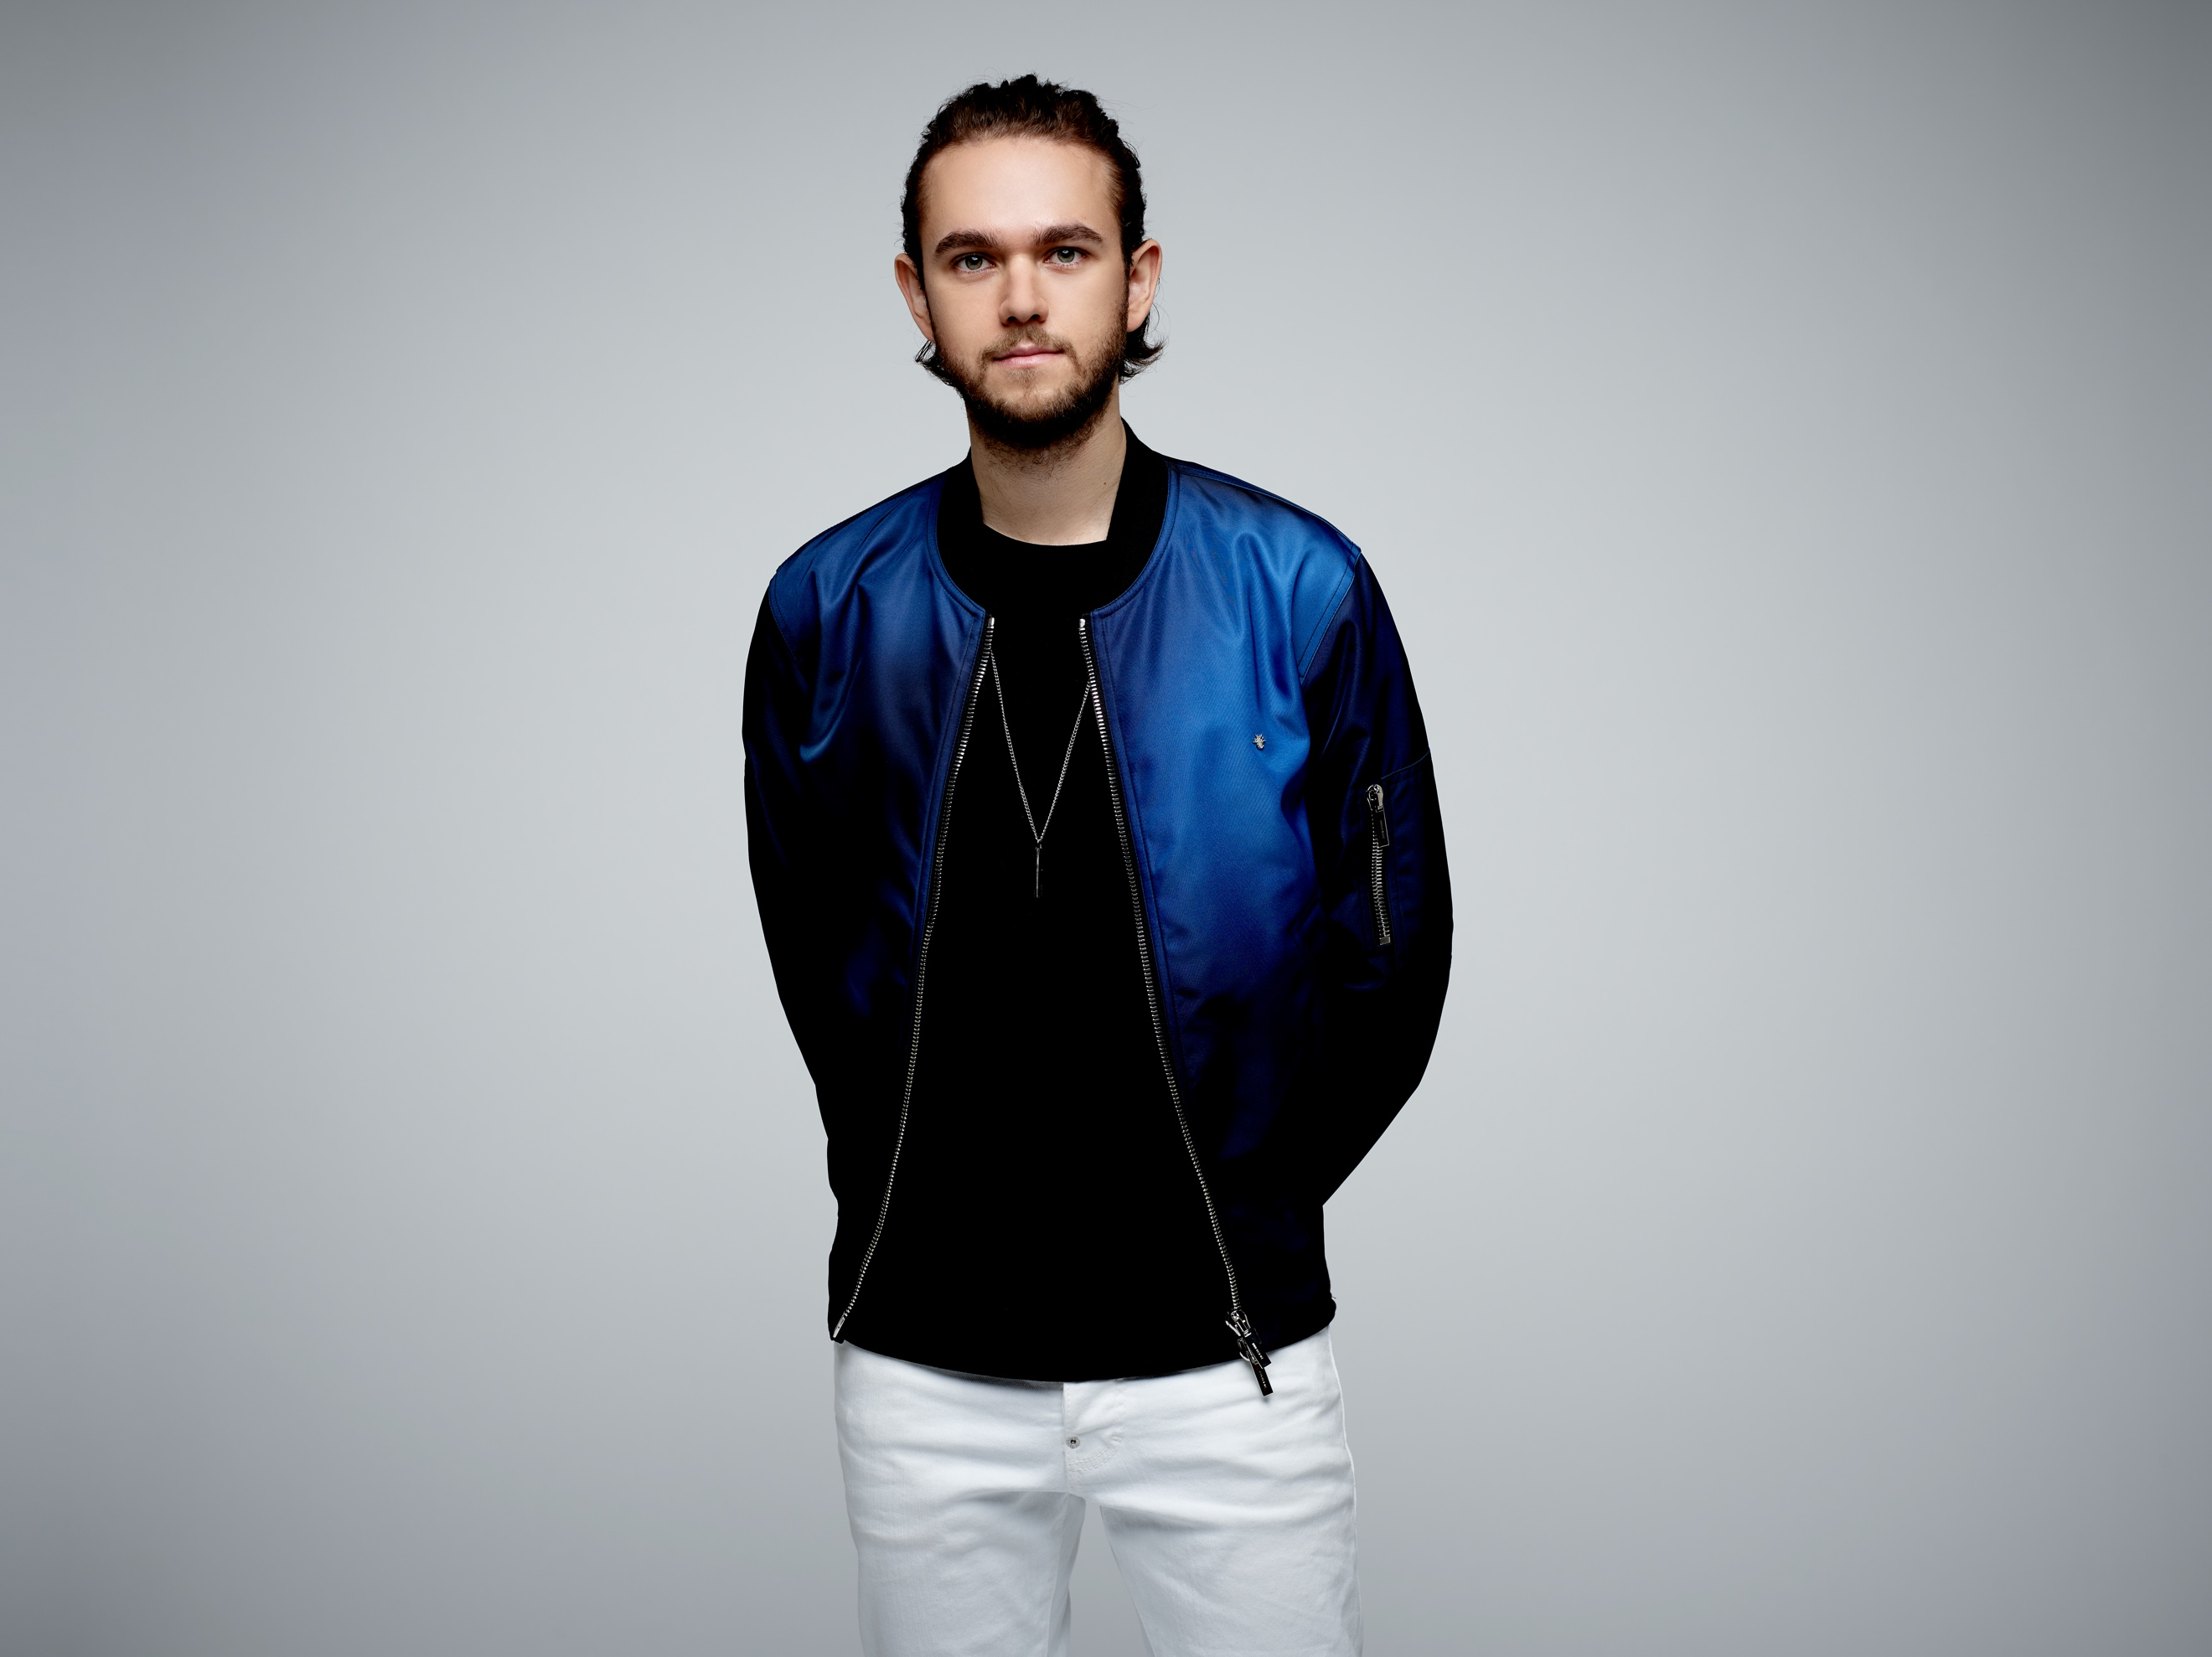 ZEDD IN THE PARK Returns To L.A. State Historic Park